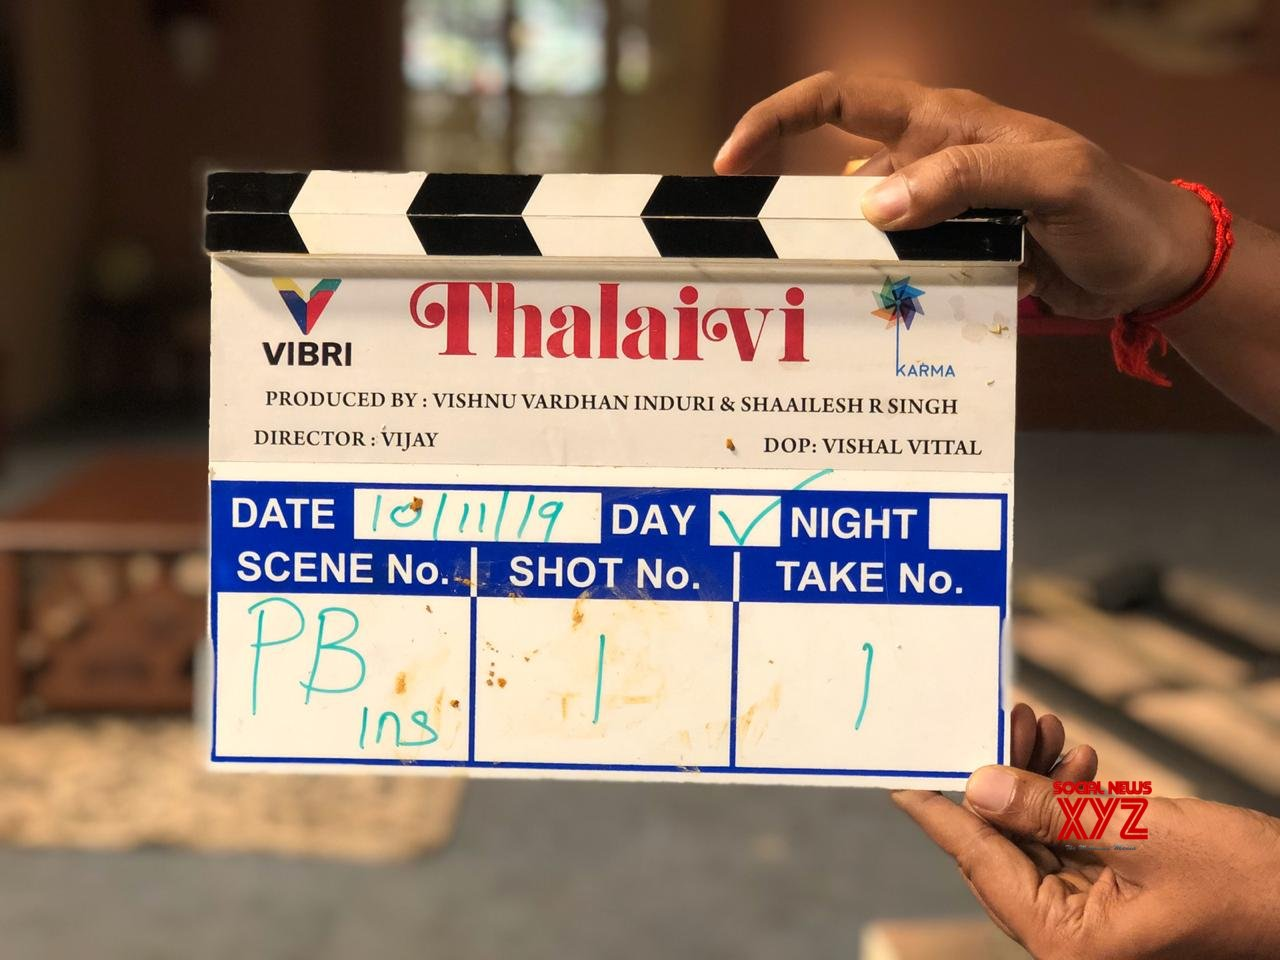 Jayalalitha Biopic Titled Thalaivi Shoot Begins Today In Chennai